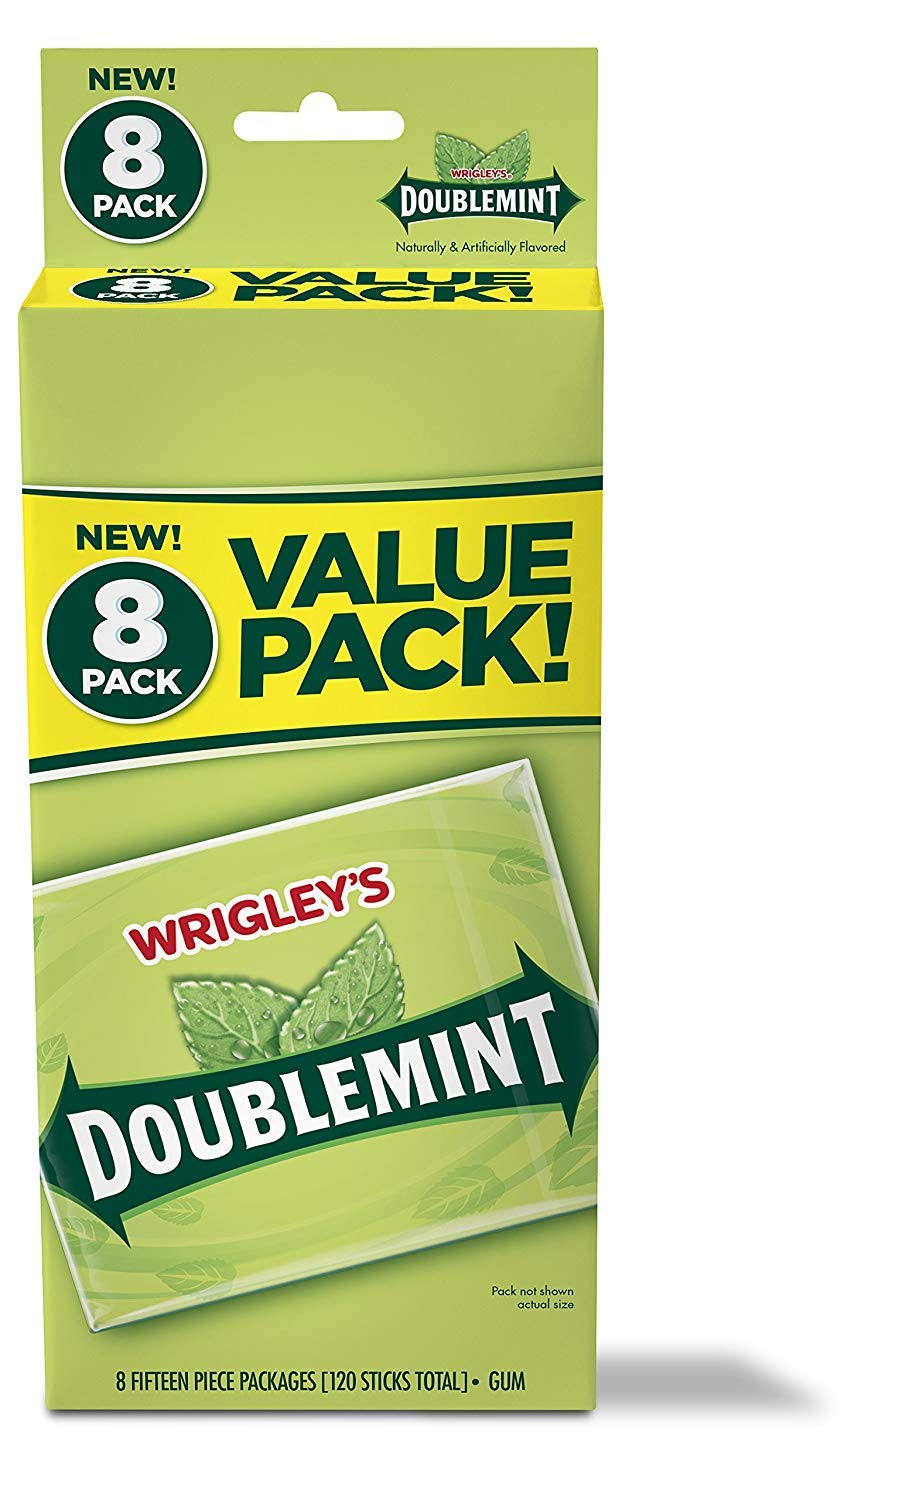 Wrigley's Doublemint Chewing Gum, 6 Value Packs (48 packs total) (4) by Doublemint Gum